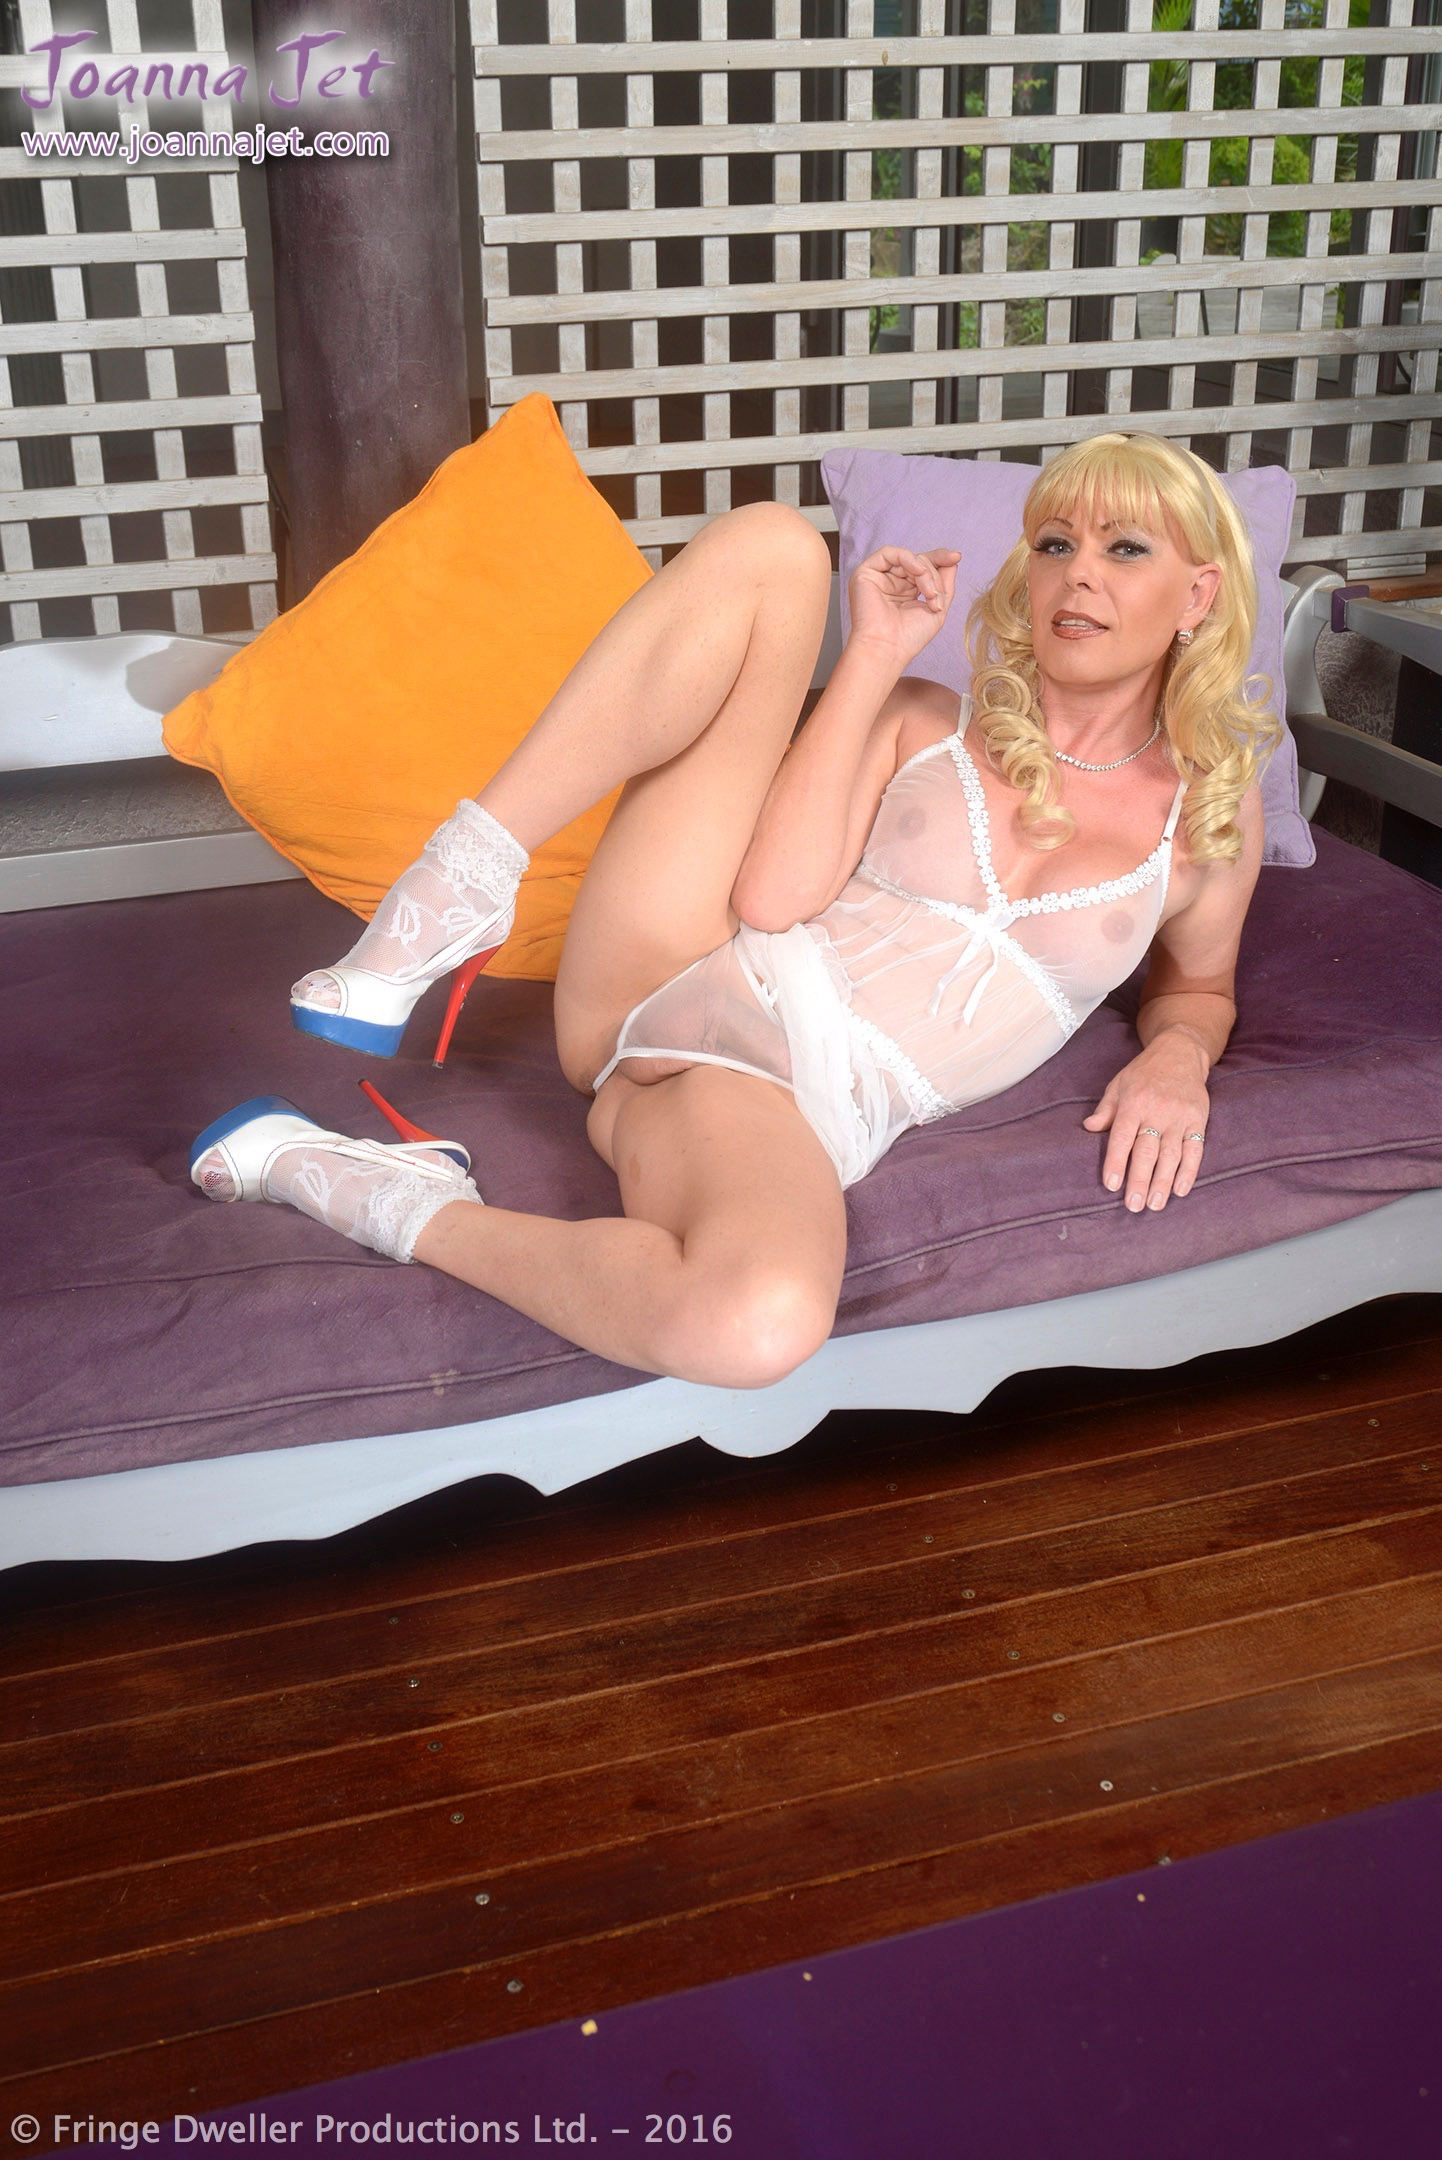 the official website of shemale pornstar joanna jet | preview